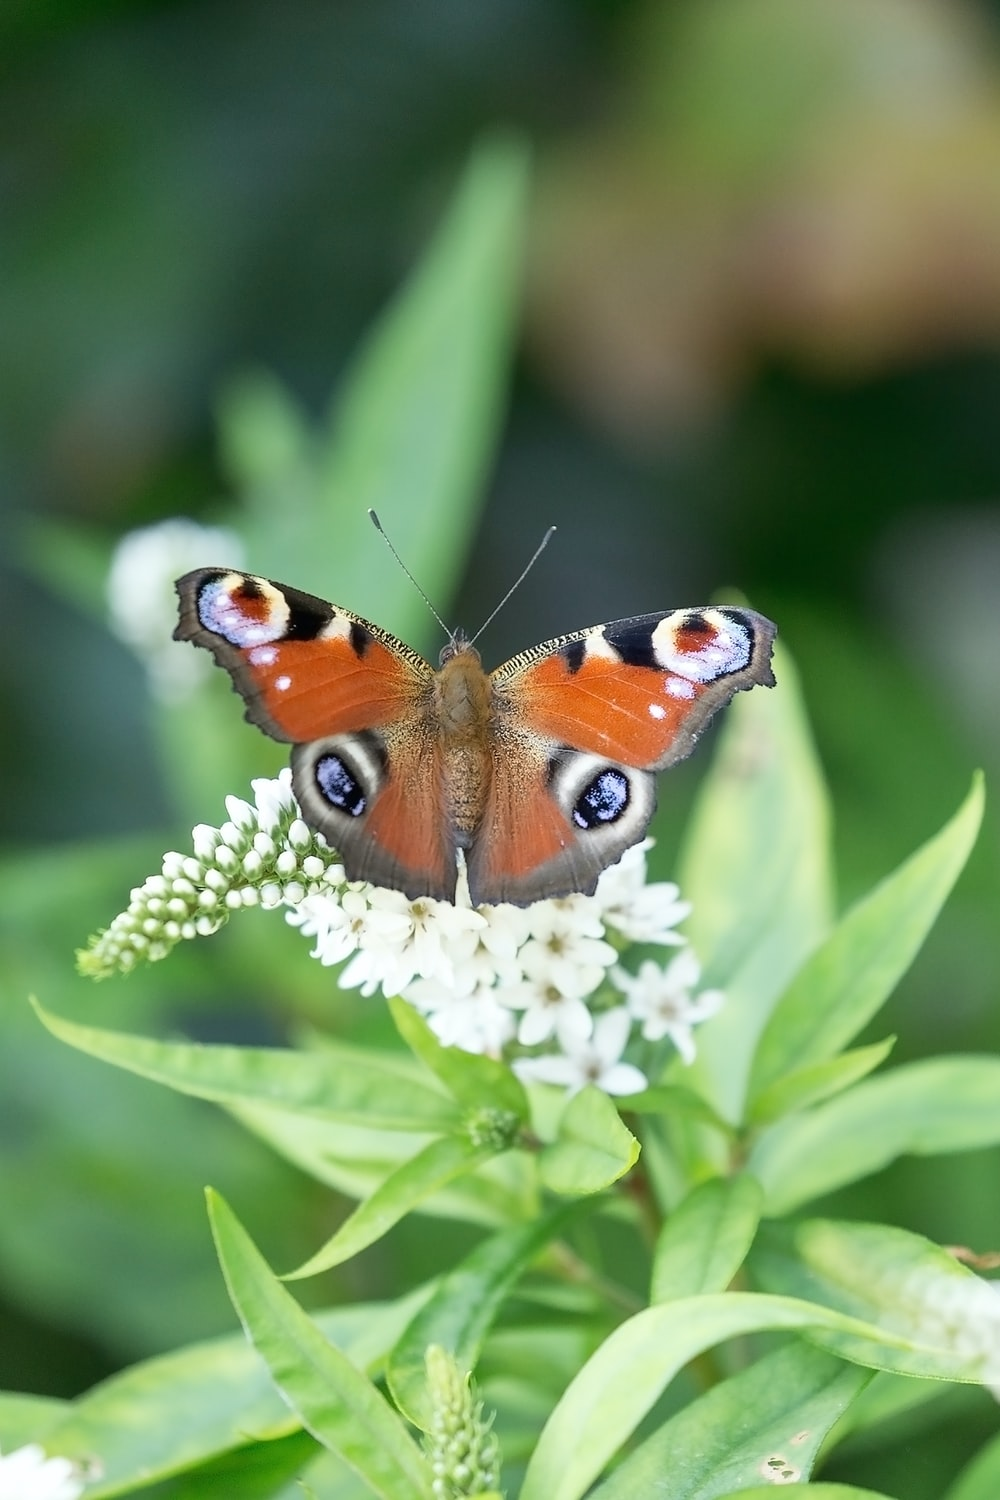 peacock butterfly perched on white flower in close up photography during daytime